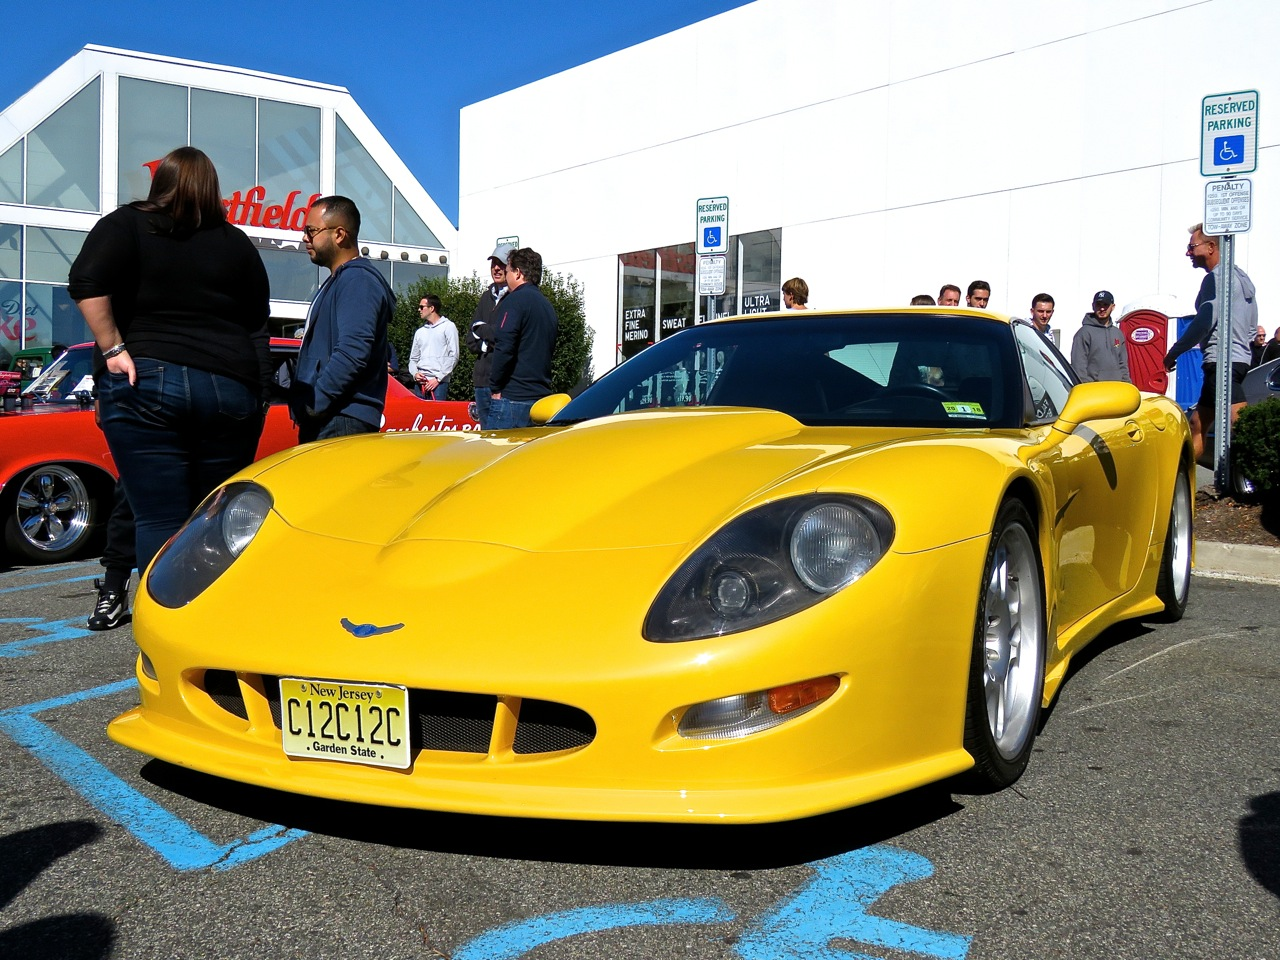 Callaway C12 Corvette Cars and Caffe 2